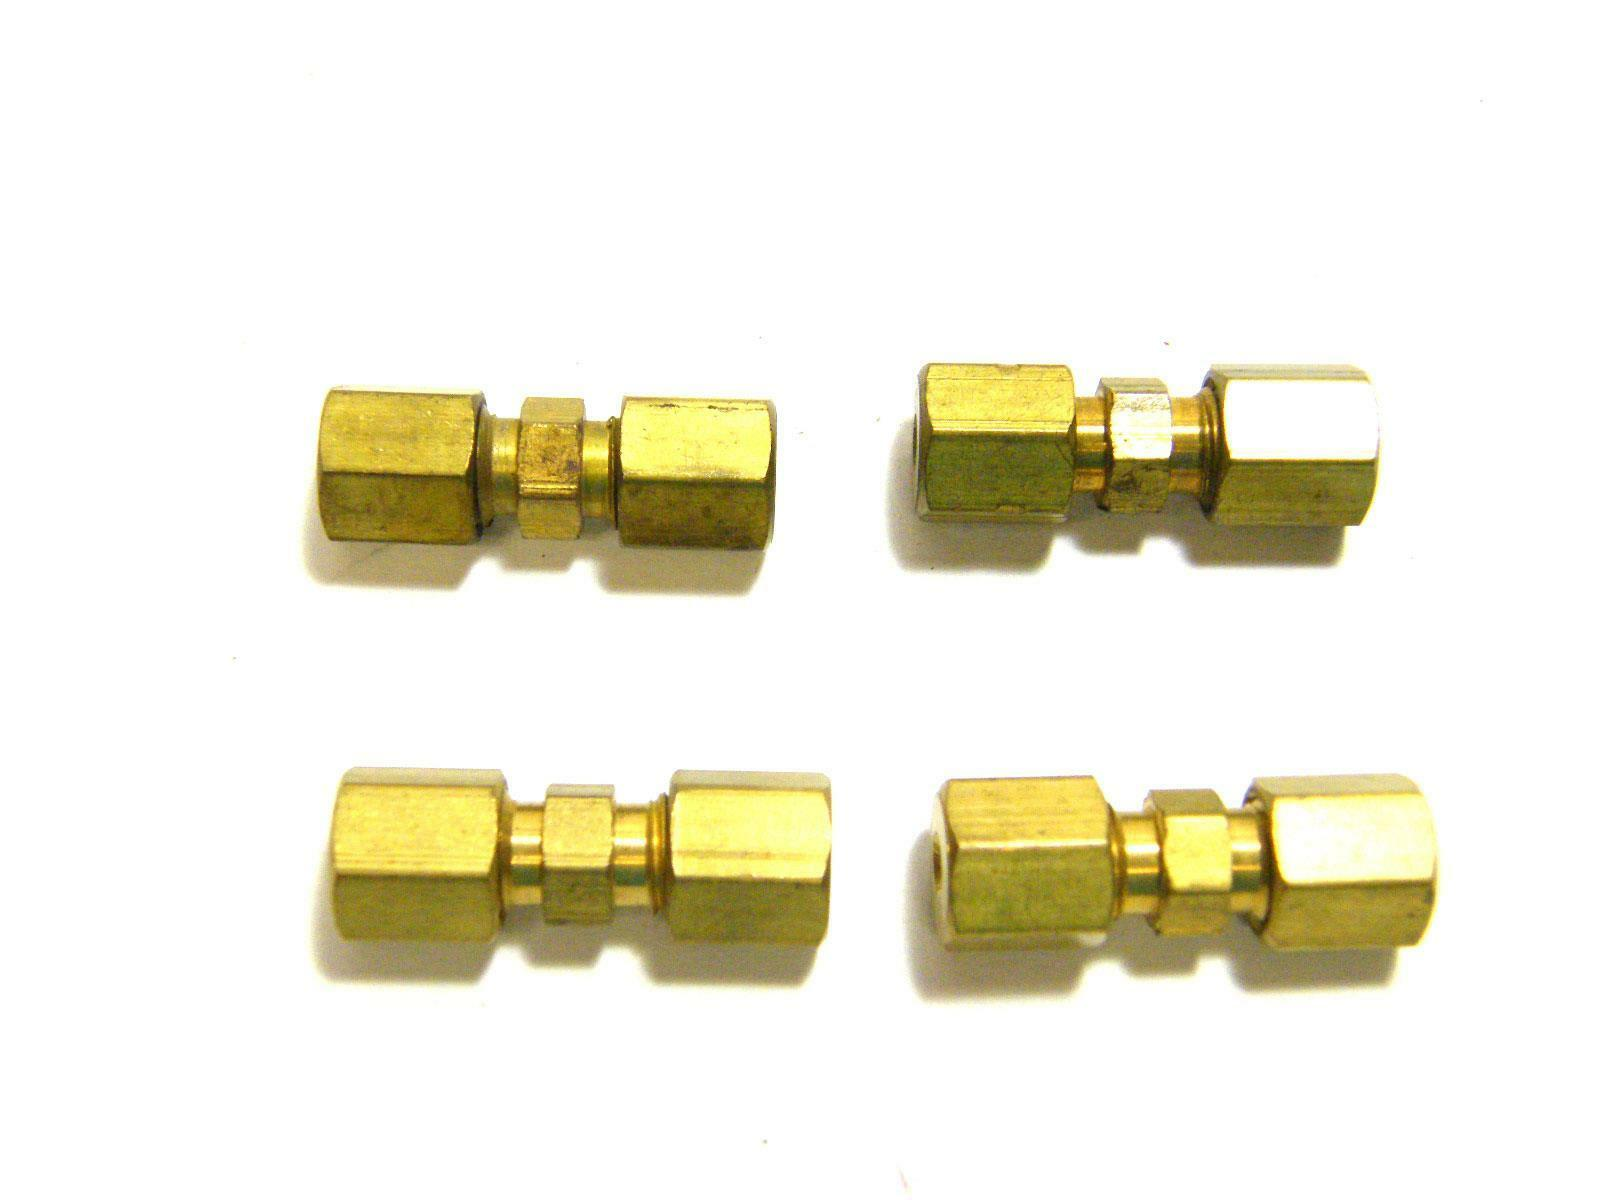 uxcell Pneumatic Push to Connect Tube Fittings Bulkhead 8mm Tube OD x M16 Male